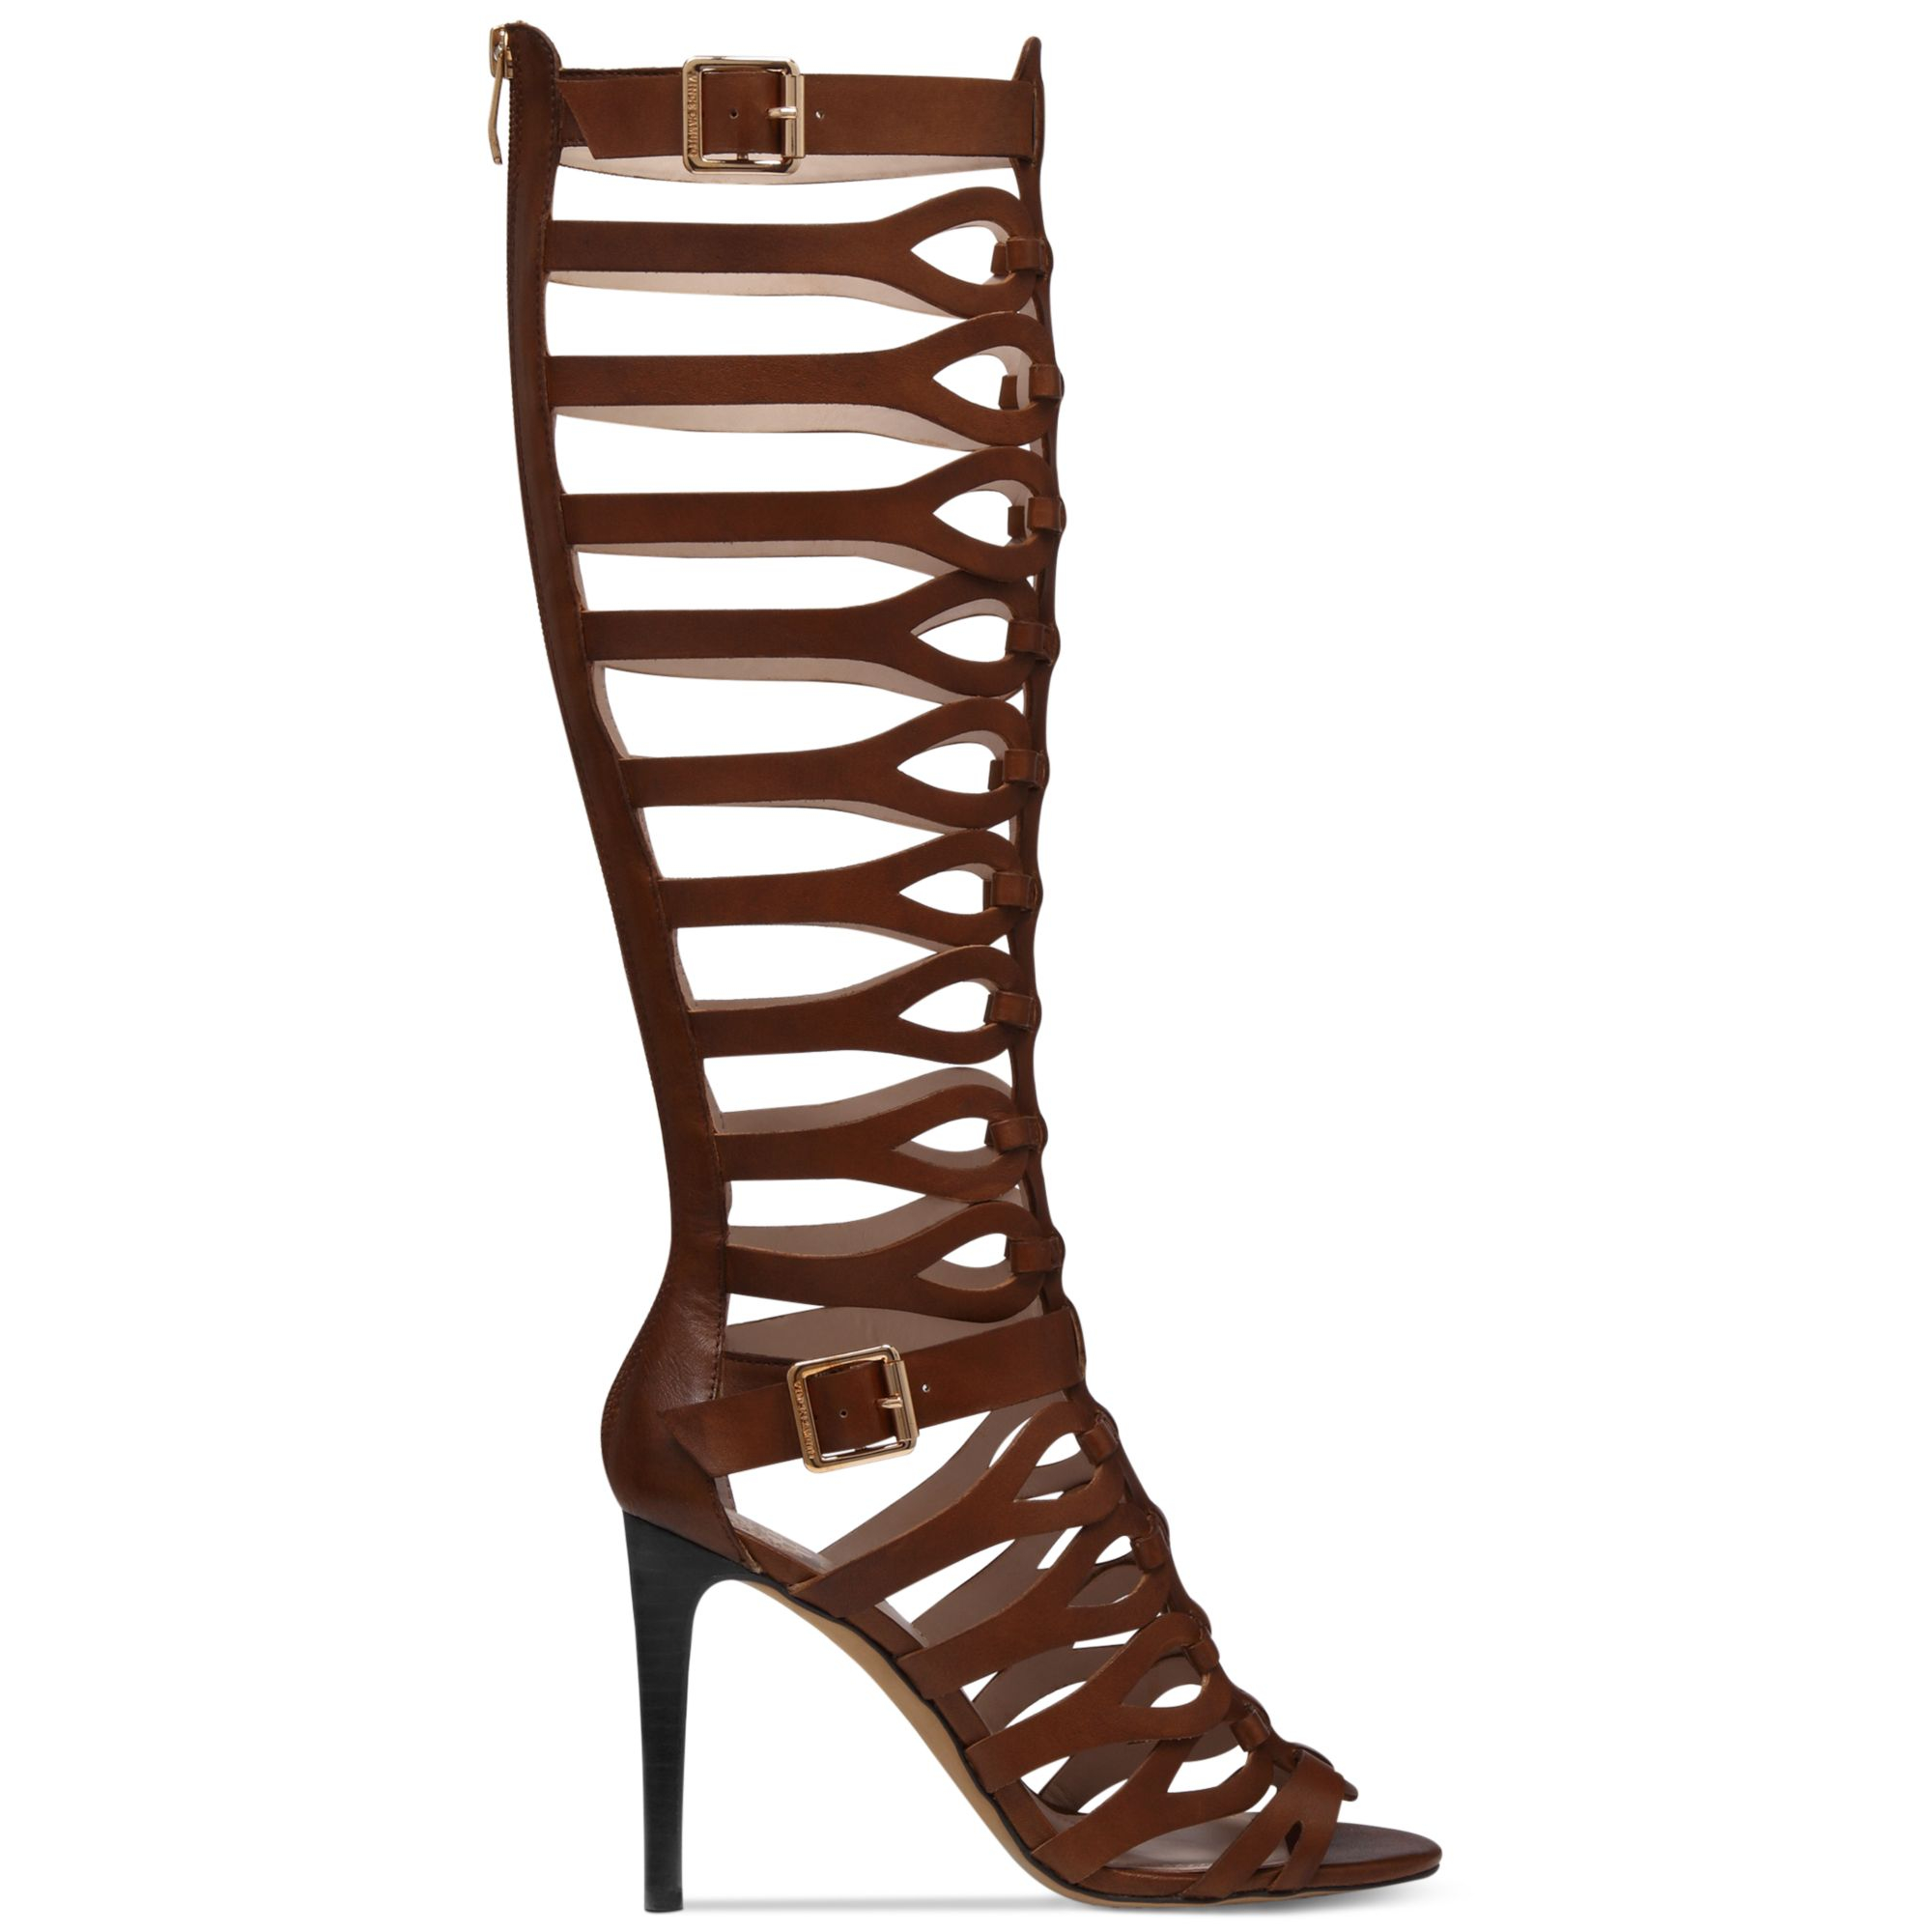 Vince Camuto Omera Tall Gladiator Heel Sandals In Brown Lyst